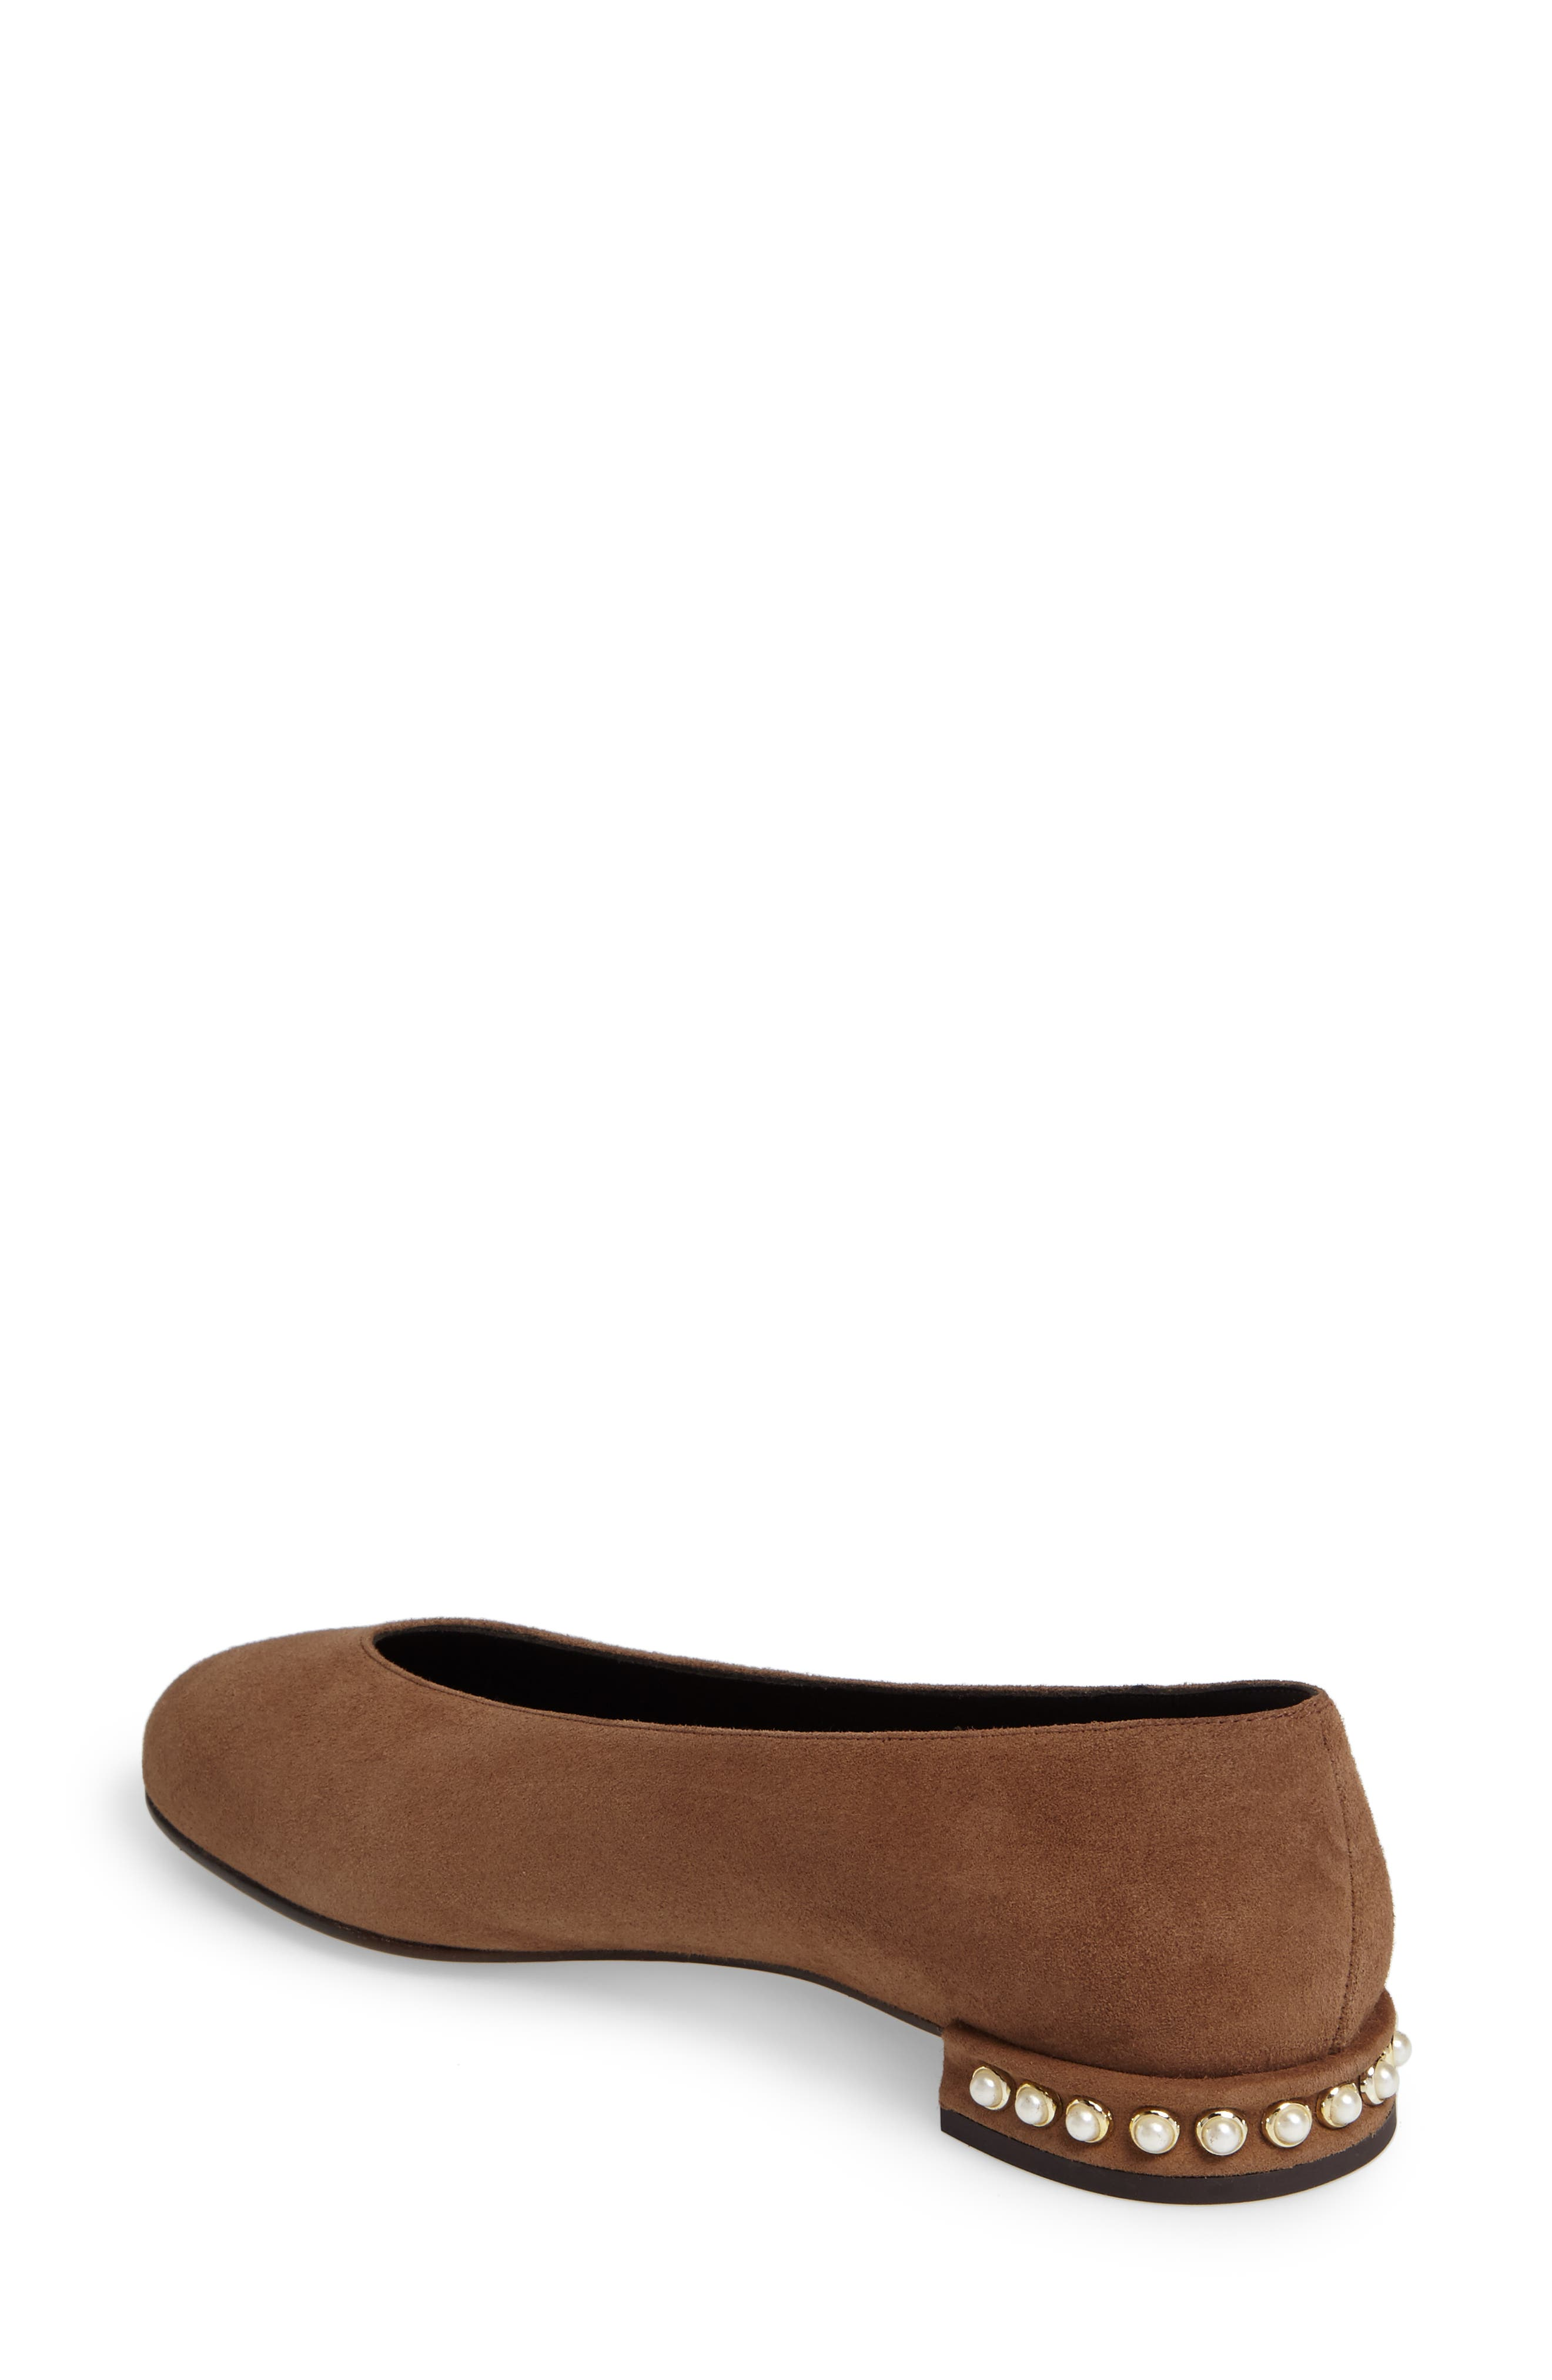 Chicpearl Ballet Flat,                             Alternate thumbnail 2, color,                             Nutmeg Suede